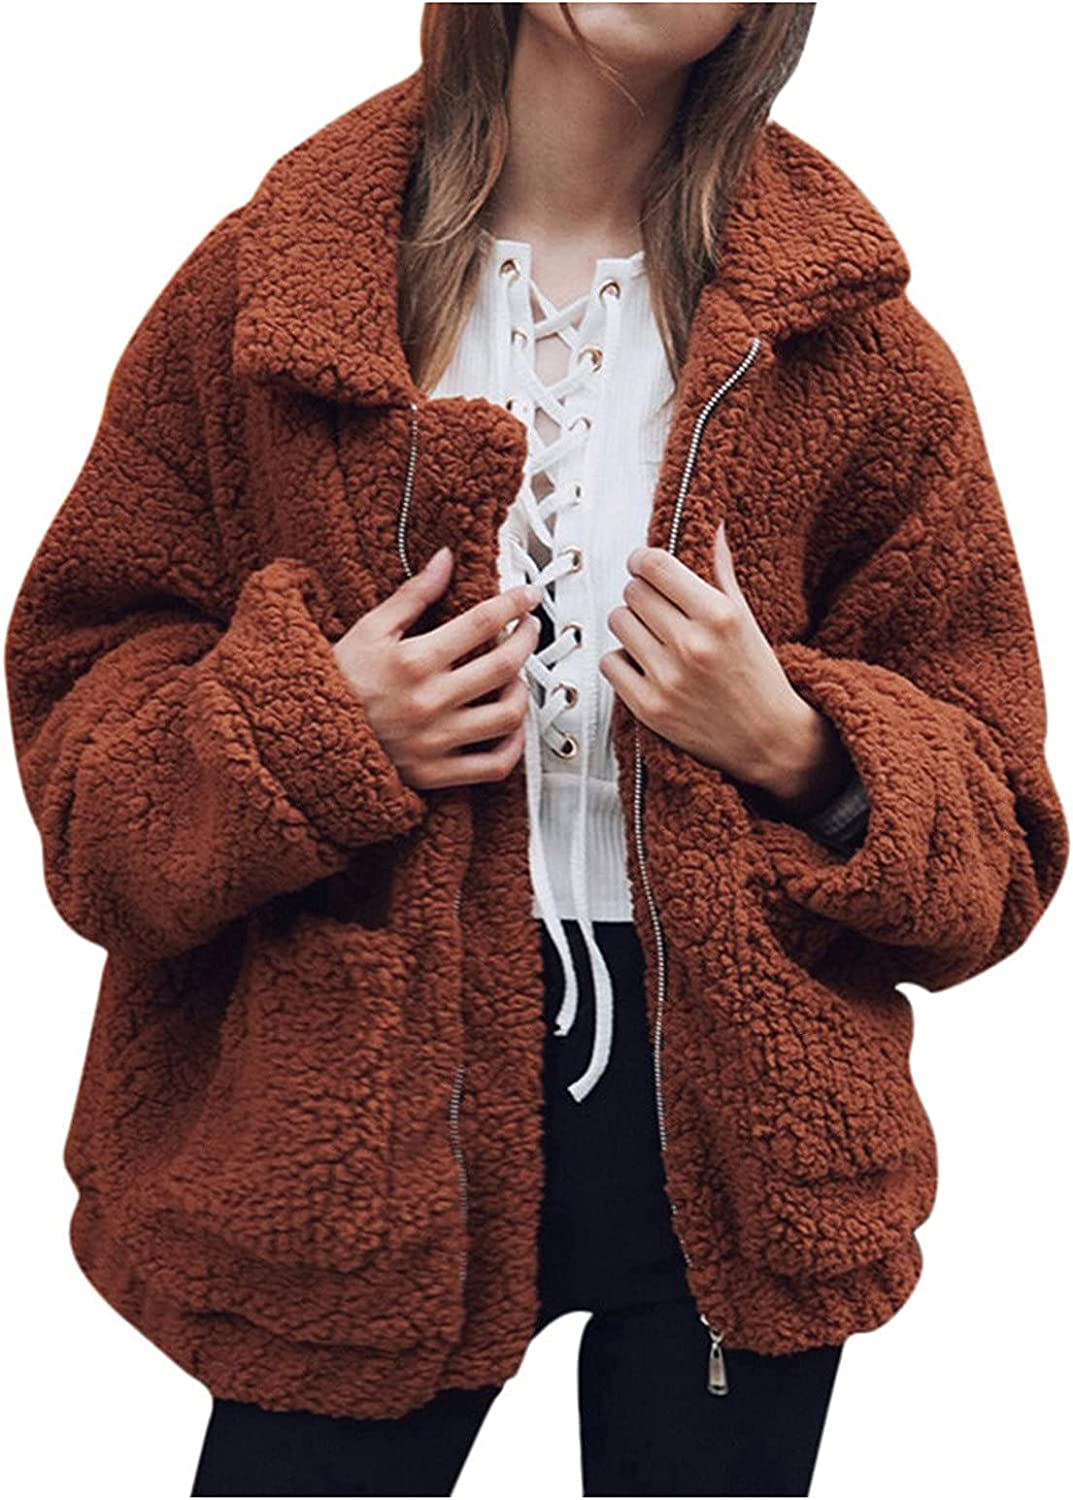 GERsome Ladies Warm Faux Furry Coat for Women's Winter Oversized Turn Down Collar Jacket Fashion Zipper Pockets Outerwear Brown